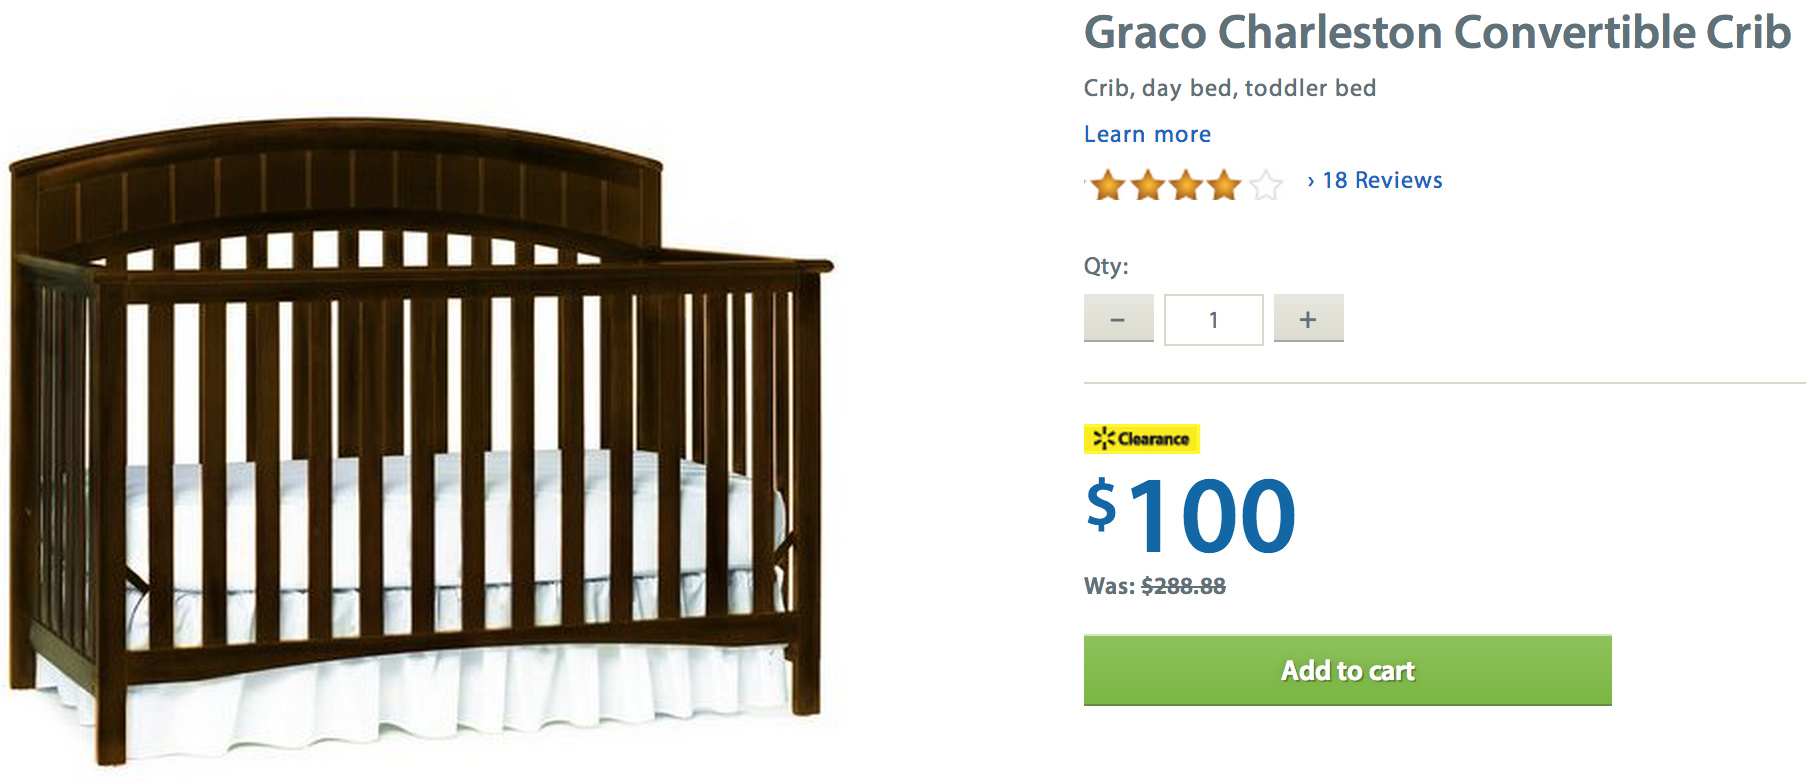 Convertible Cribs. Choosing the perfect baby crib for your precious little one is a big decision. Browse any time of the day or night from the comfort of home for ideas, information and solutions and arrange for delivery direct to your door.